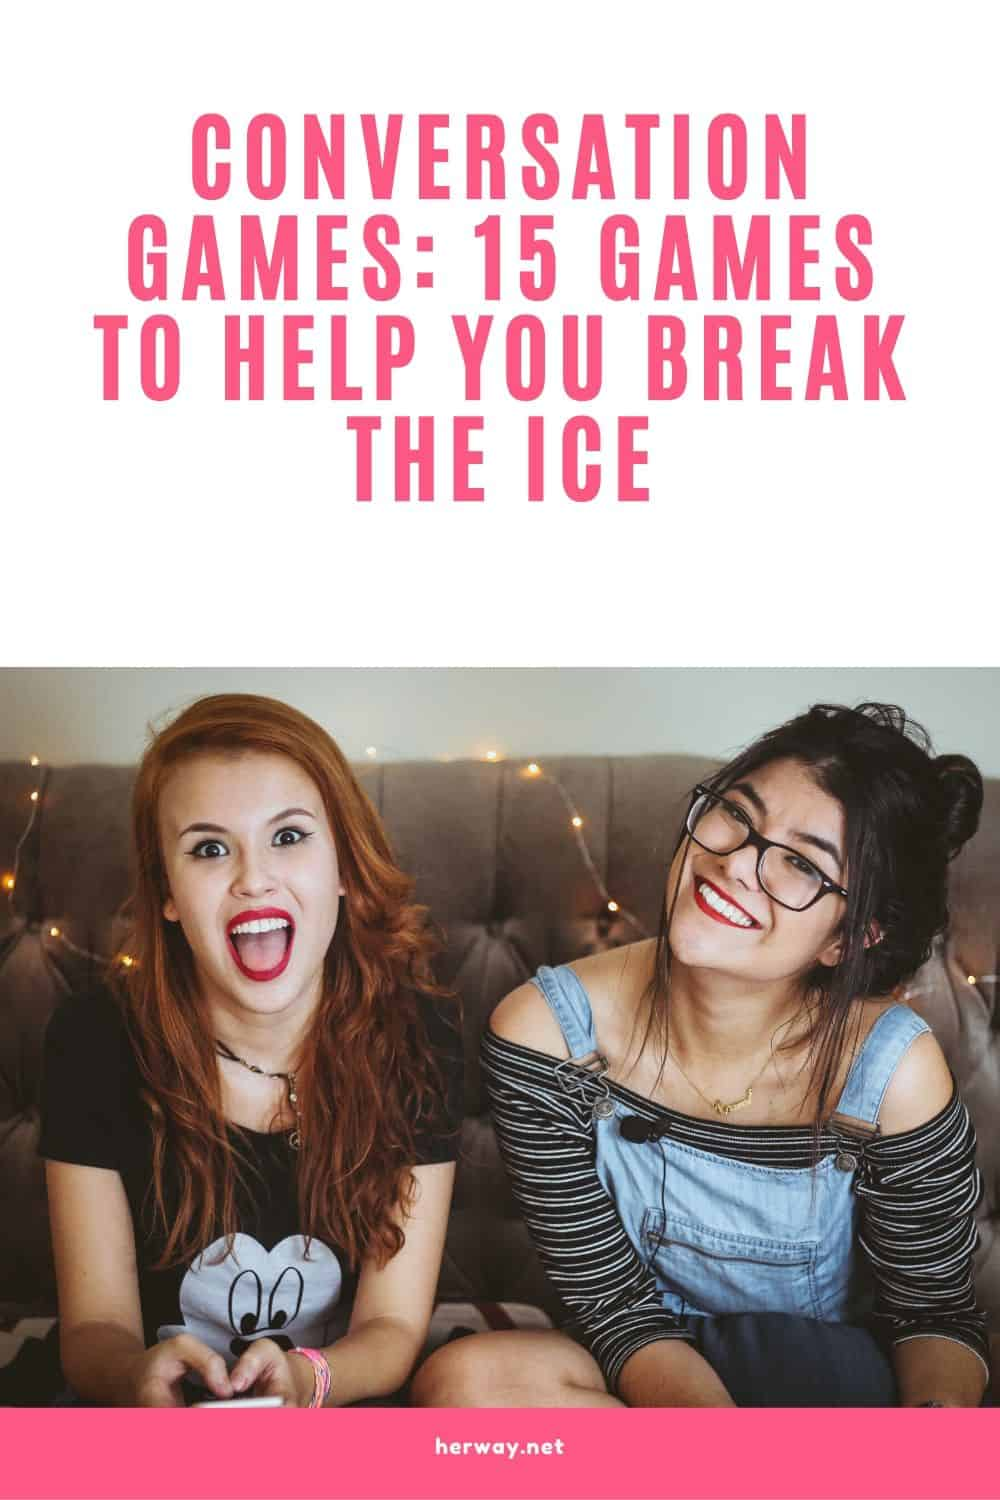 Conversation Games 15 Games To Help You Break The Ice Pinterest